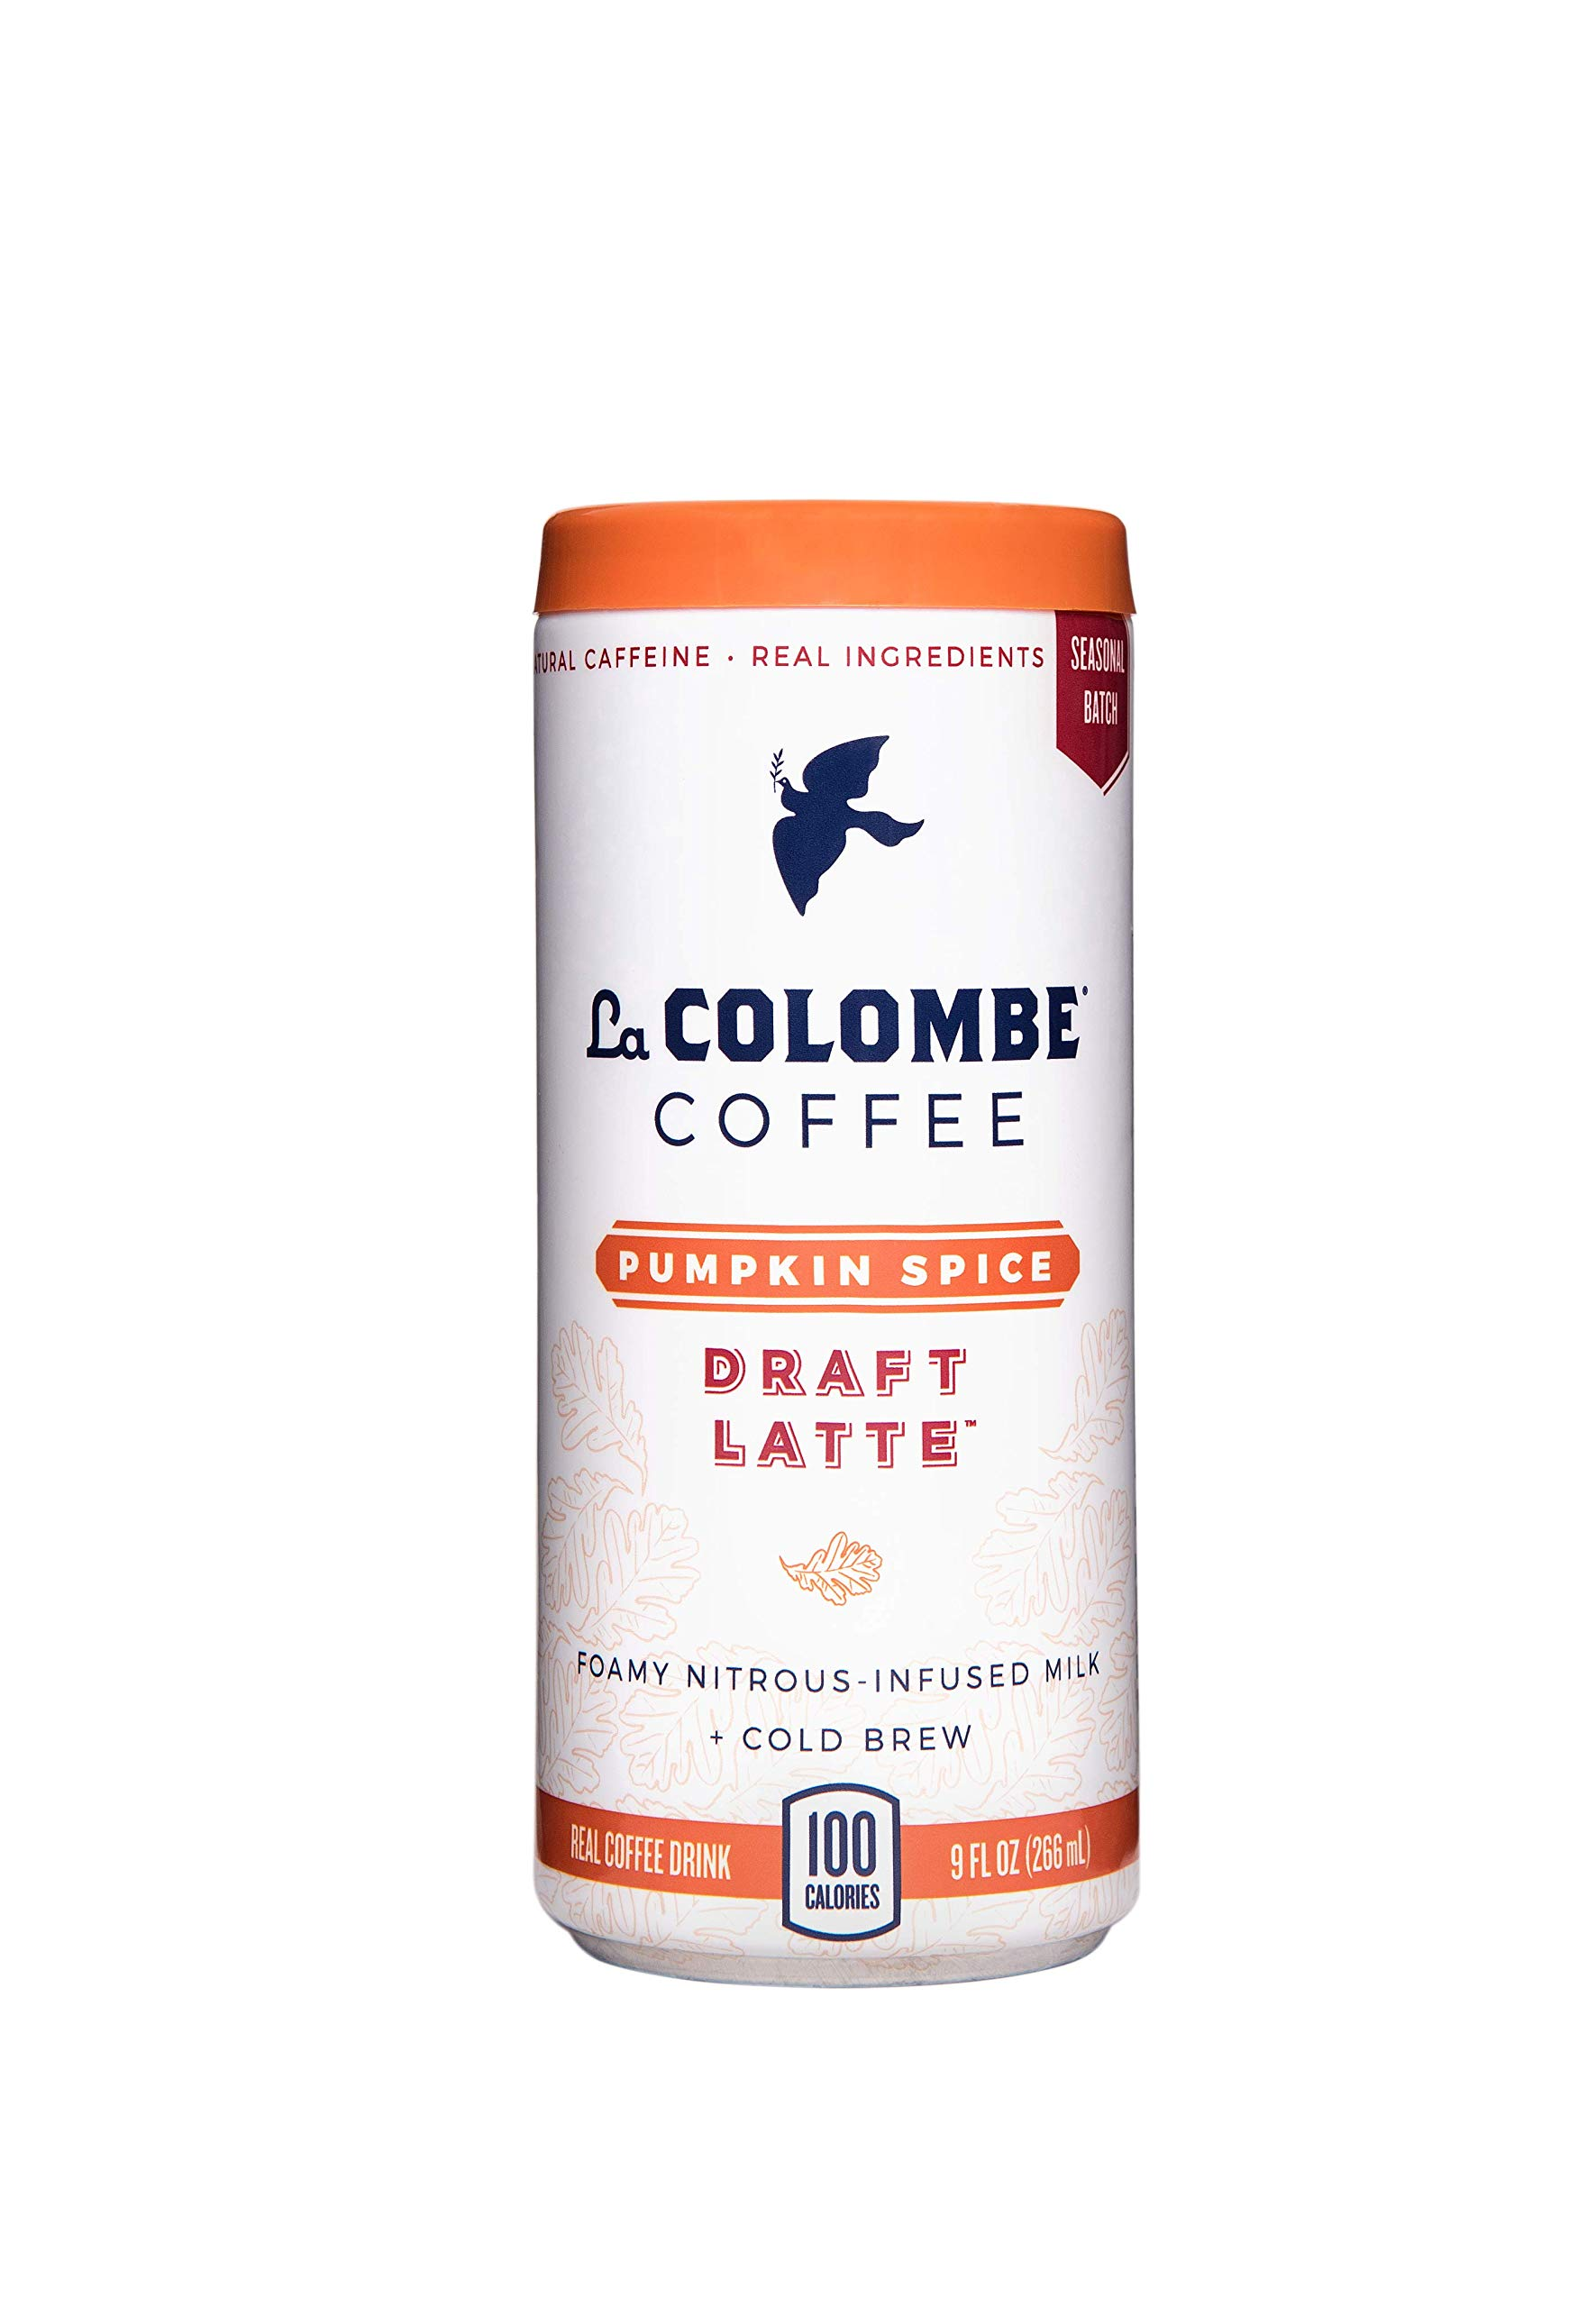 La Colombe Pumpkin Spice Draft Latte - 9 Fluid Ounce, 16 Count - Cold-Pressed Espresso and Frothed Milk + Real Pumpkin - Made With Real Ingredients - Grab And Go Coffee by La Colombe